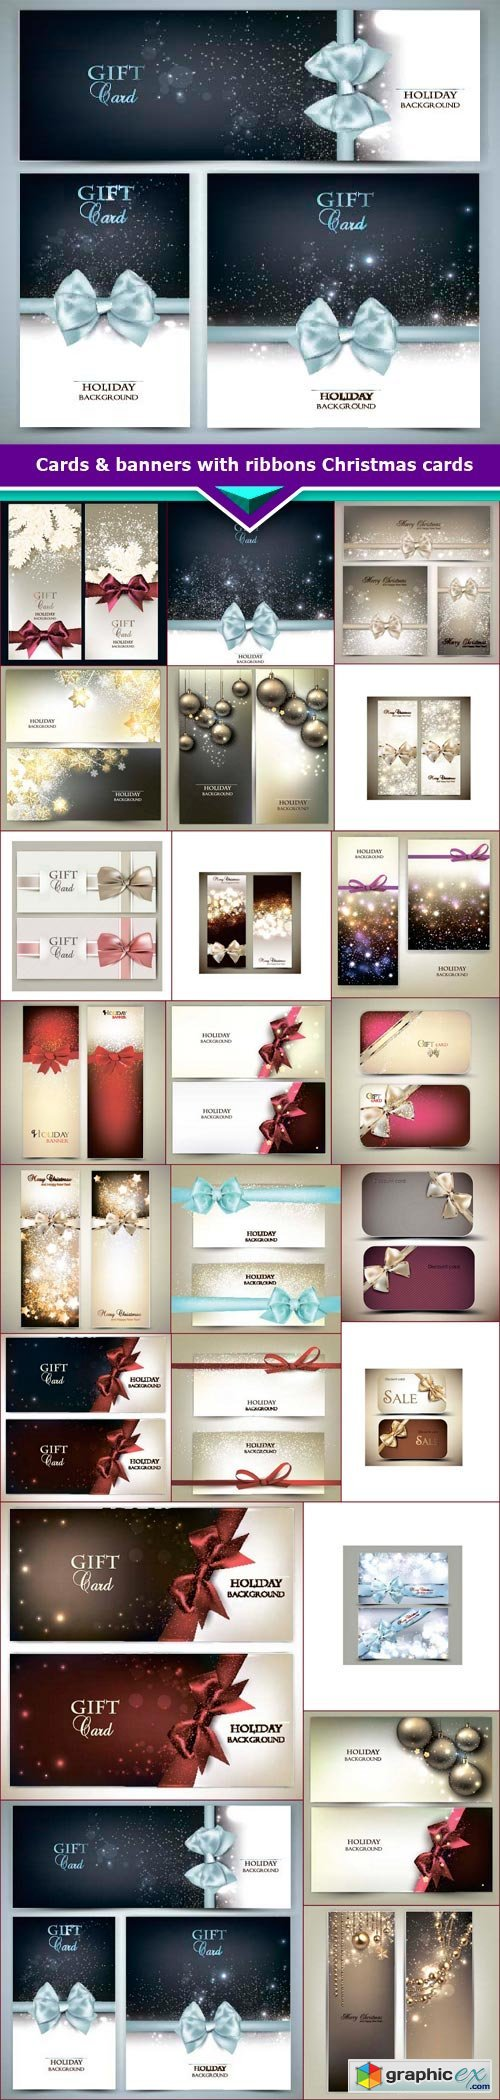 Cards & banners with ribbons Christmas cards 24x EPS